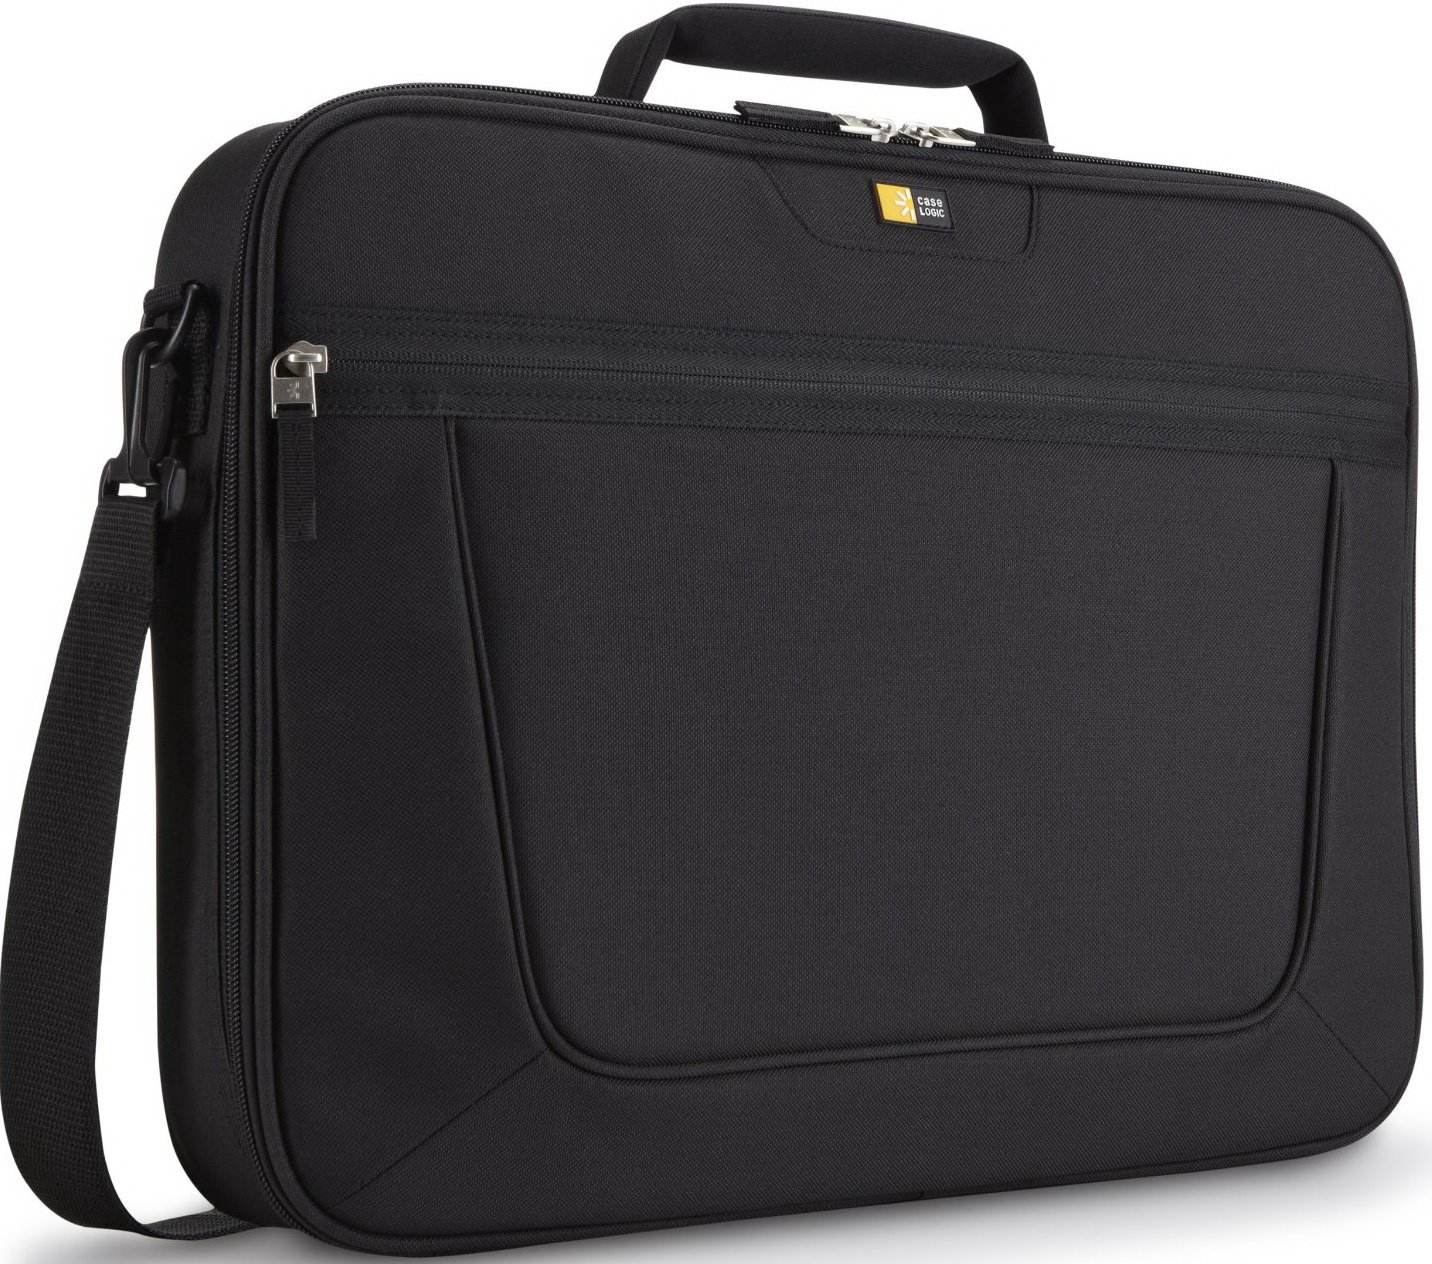 Сумка для ноутбука CASE LOGIC Carrying Case Briefcase 15